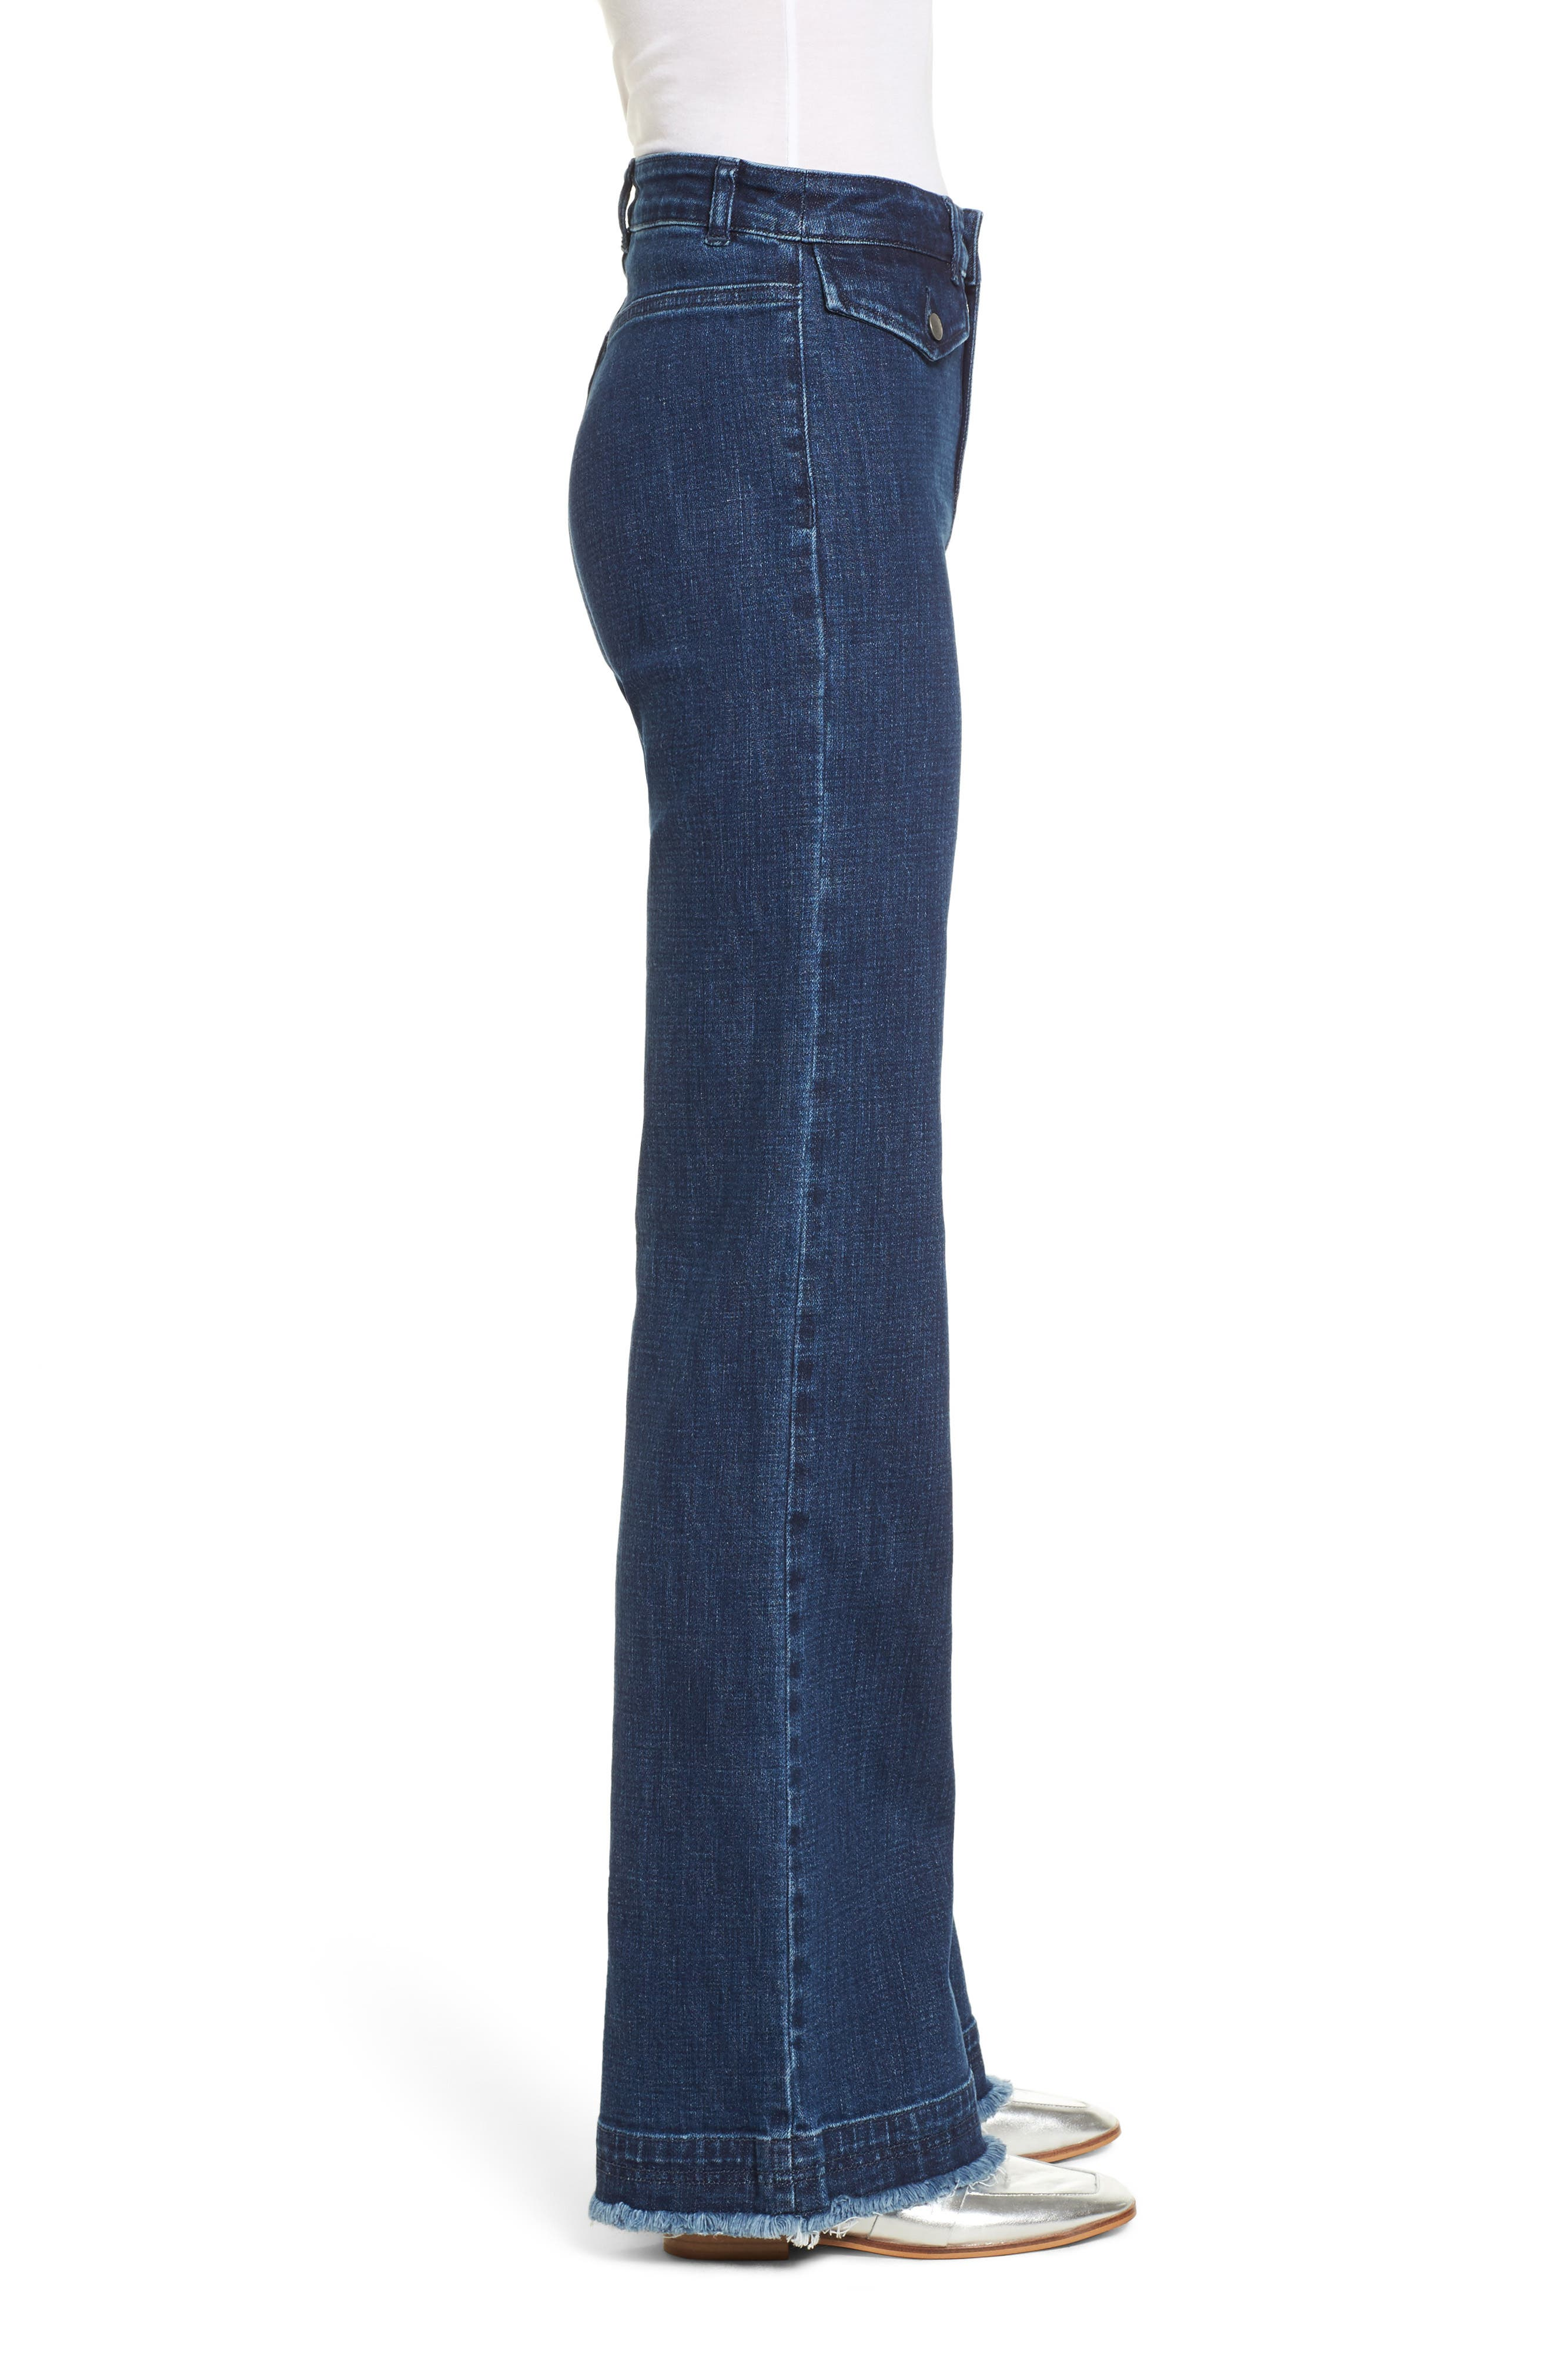 Elwood Wide Leg Jeans,                             Alternate thumbnail 3, color,                             Indigo